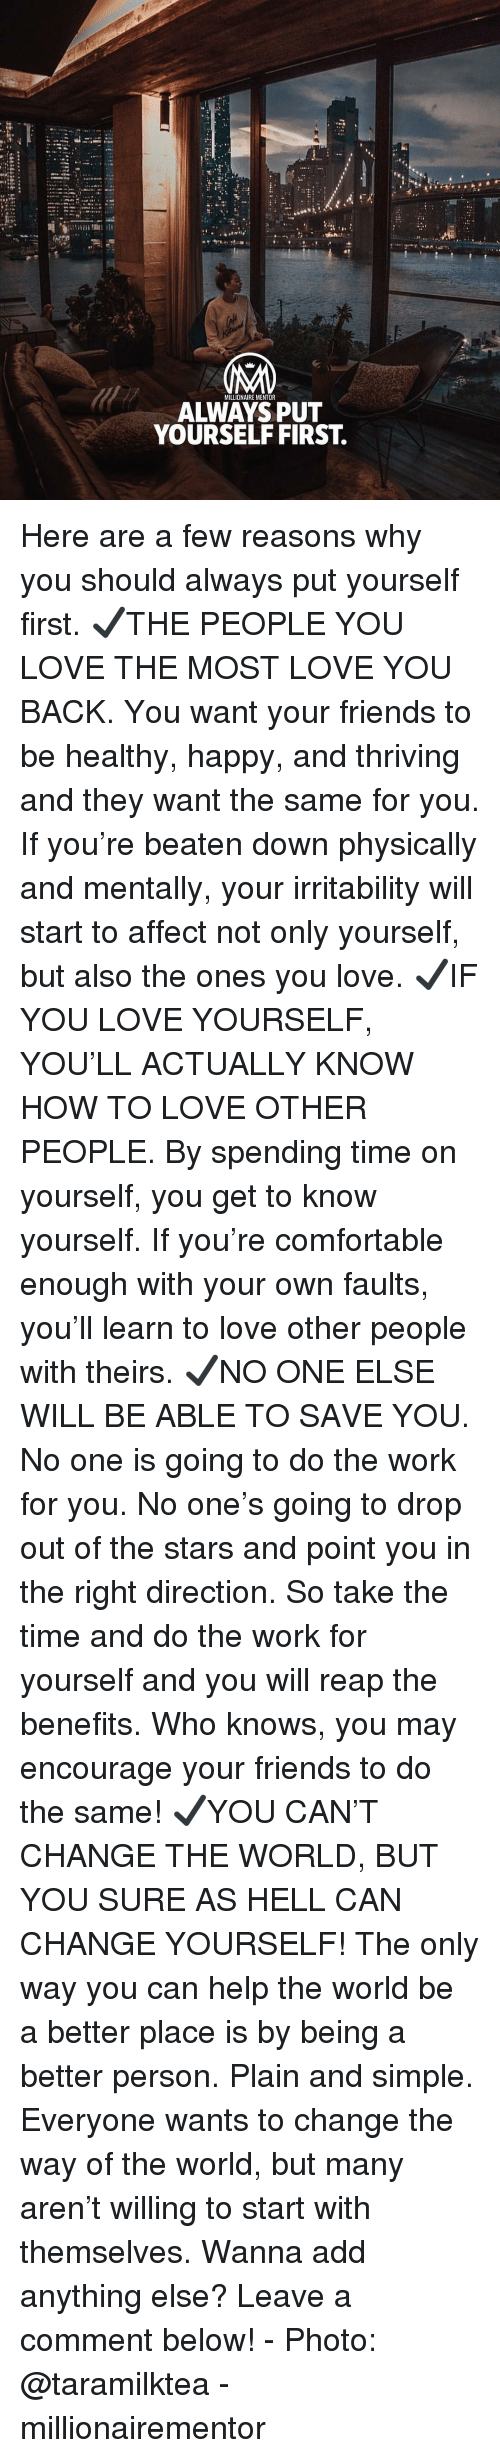 Comment Below: NM  MILLIONAIRE MENTOR  ALWAYS PUT  YOURSELF FIRST. Here are a few reasons why you should always put yourself first. ✔️THE PEOPLE YOU LOVE THE MOST LOVE YOU BACK. You want your friends to be healthy, happy, and thriving and they want the same for you. If you're beaten down physically and mentally, your irritability will start to affect not only yourself, but also the ones you love. ✔️IF YOU LOVE YOURSELF, YOU'LL ACTUALLY KNOW HOW TO LOVE OTHER PEOPLE. By spending time on yourself, you get to know yourself. If you're comfortable enough with your own faults, you'll learn to love other people with theirs. ✔️NO ONE ELSE WILL BE ABLE TO SAVE YOU. No one is going to do the work for you. No one's going to drop out of the stars and point you in the right direction. So take the time and do the work for yourself and you will reap the benefits. Who knows, you may encourage your friends to do the same! ✔️YOU CAN'T CHANGE THE WORLD, BUT YOU SURE AS HELL CAN CHANGE YOURSELF! The only way you can help the world be a better place is by being a better person. Plain and simple. Everyone wants to change the way of the world, but many aren't willing to start with themselves. Wanna add anything else? Leave a comment below! - Photo: @taramilktea - millionairementor